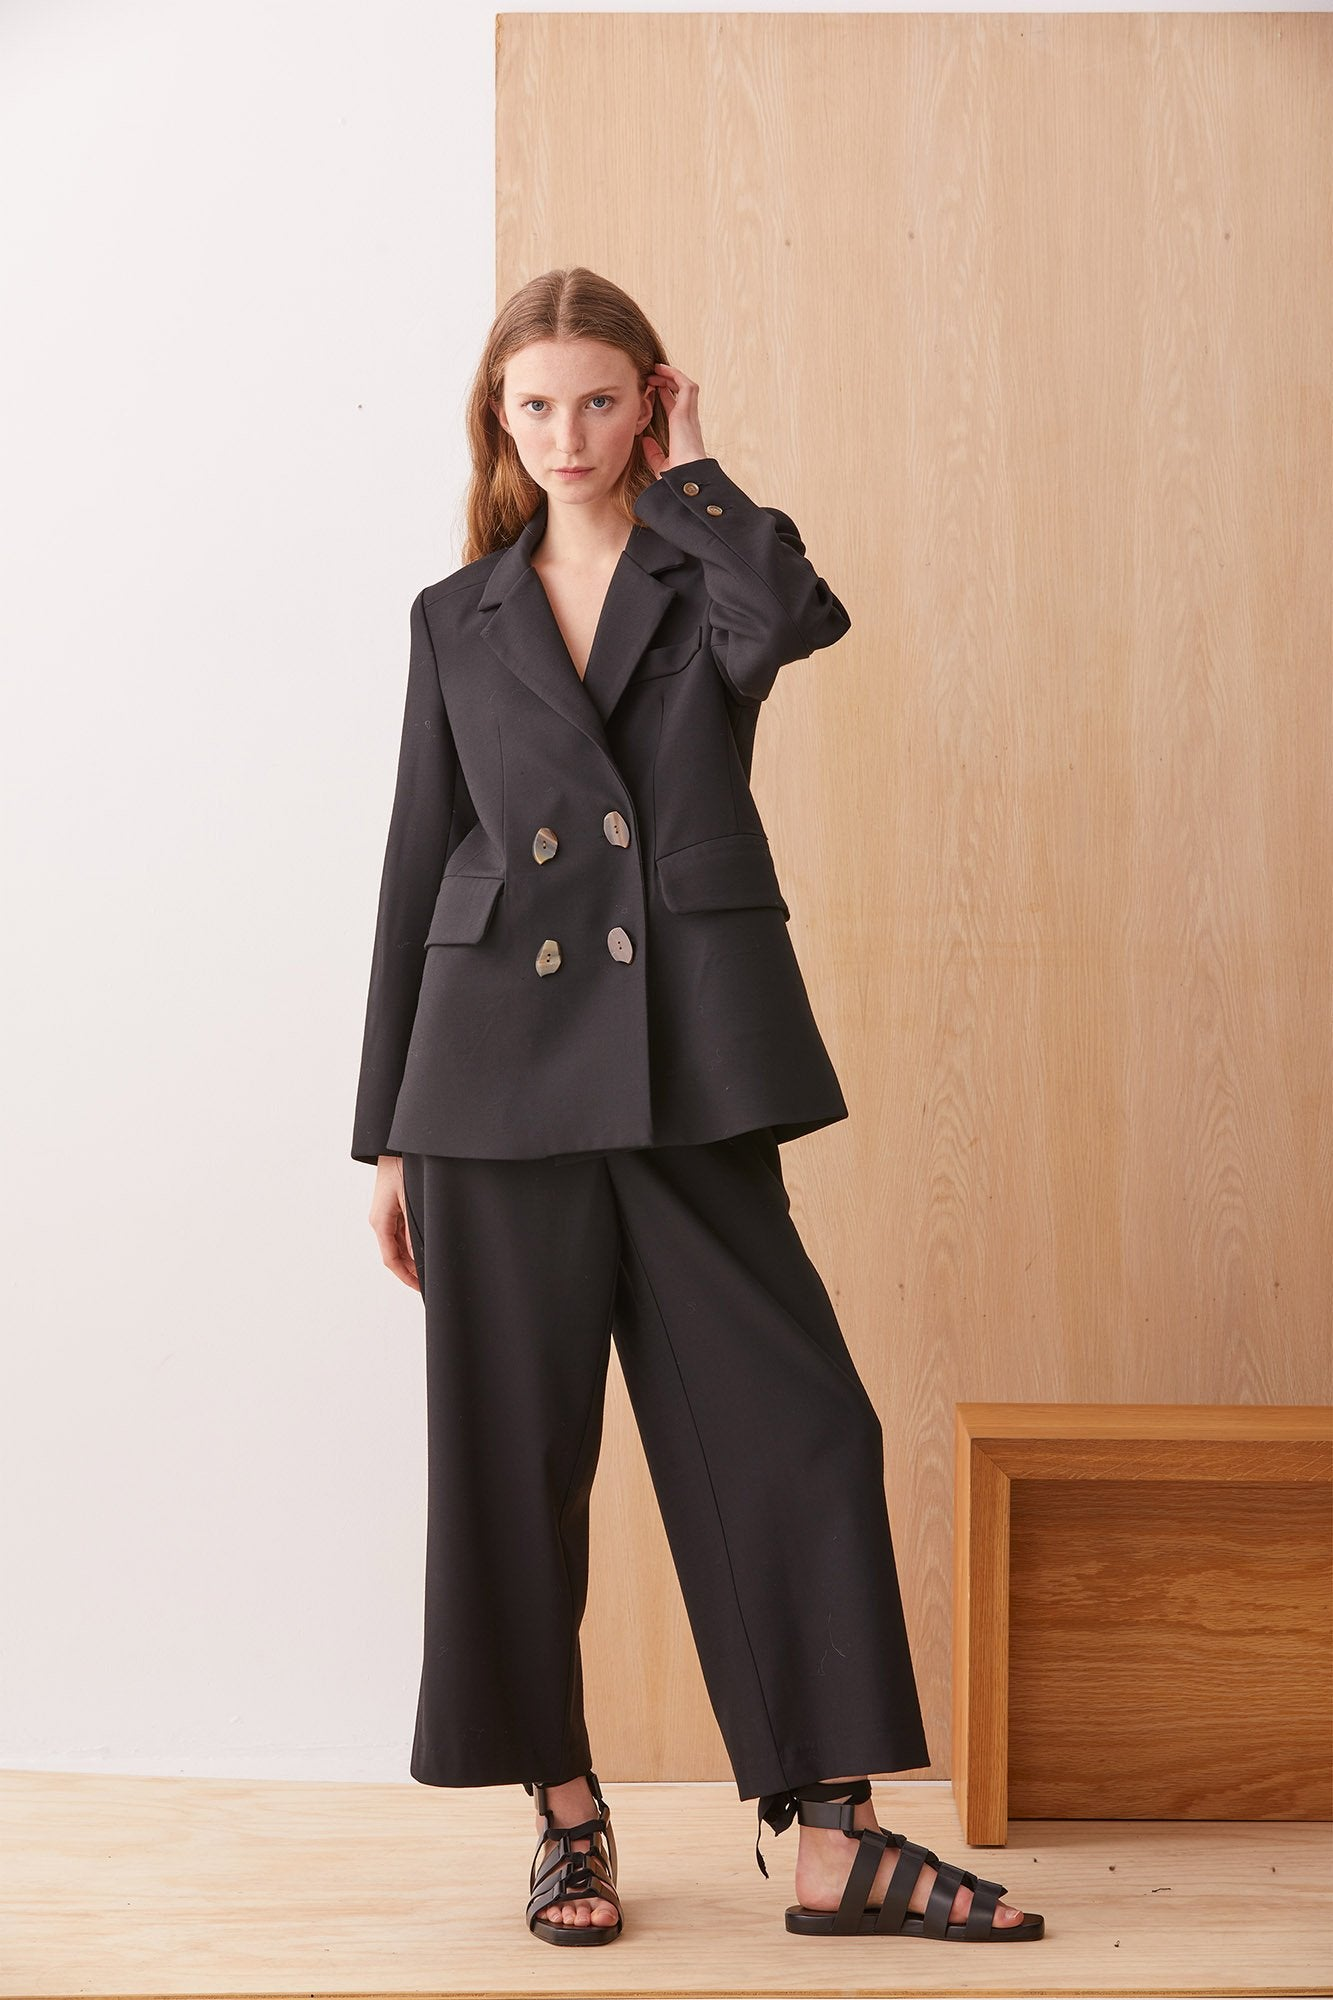 NZ Fashion Clothing Boutique gregorythelabel Gregory AW19 Carlo Pant Black Wool Twill Made in NZ